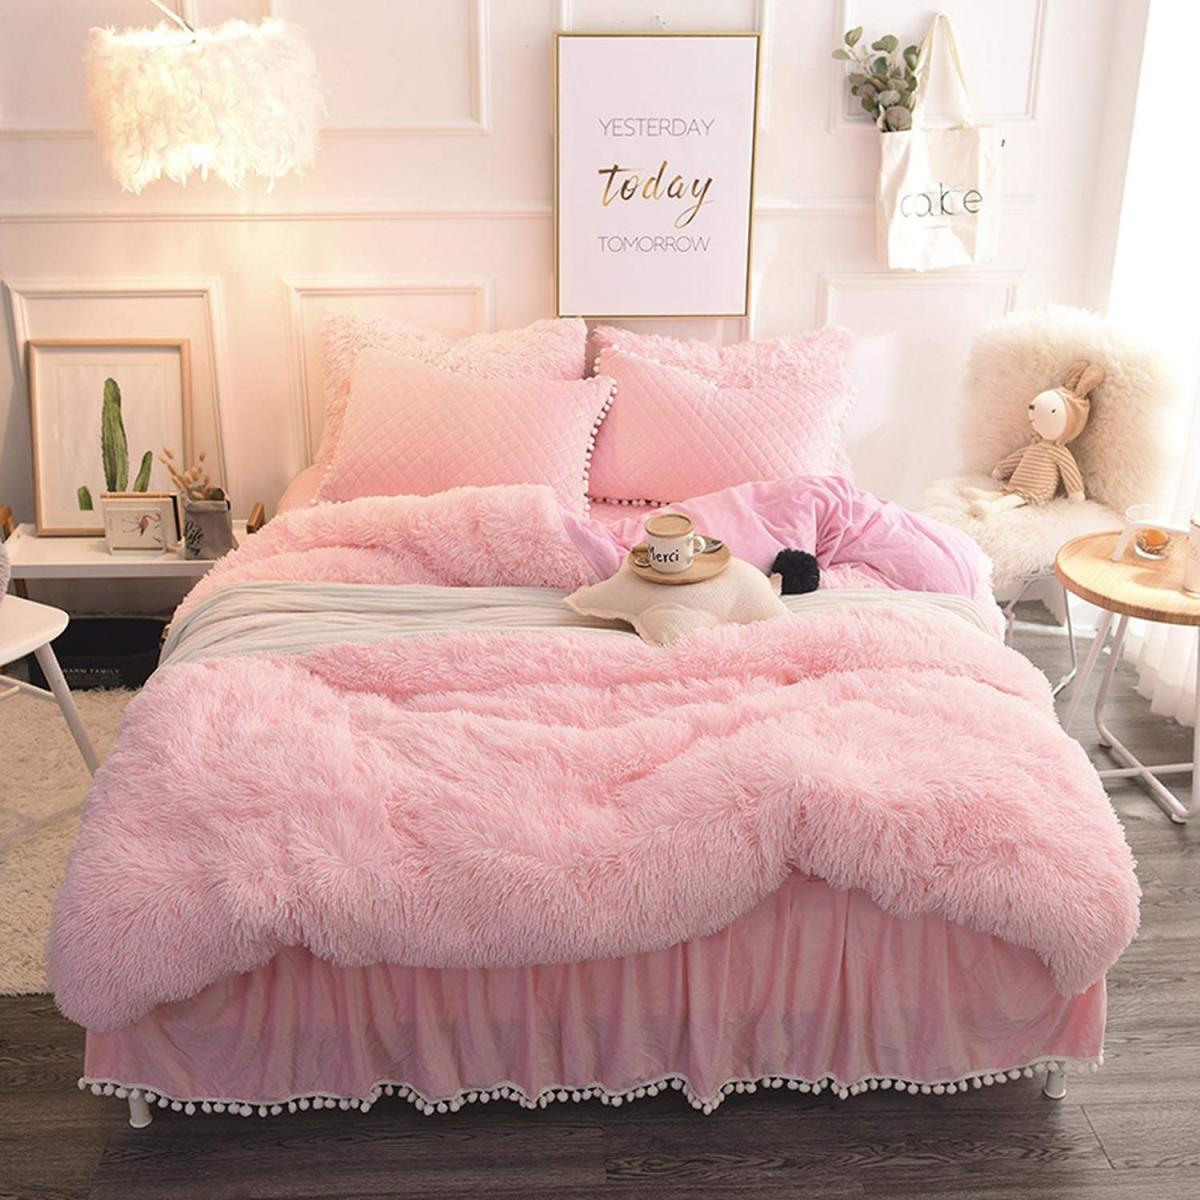 Cozy pink bedroom for chick girl who loves fur and fluffy